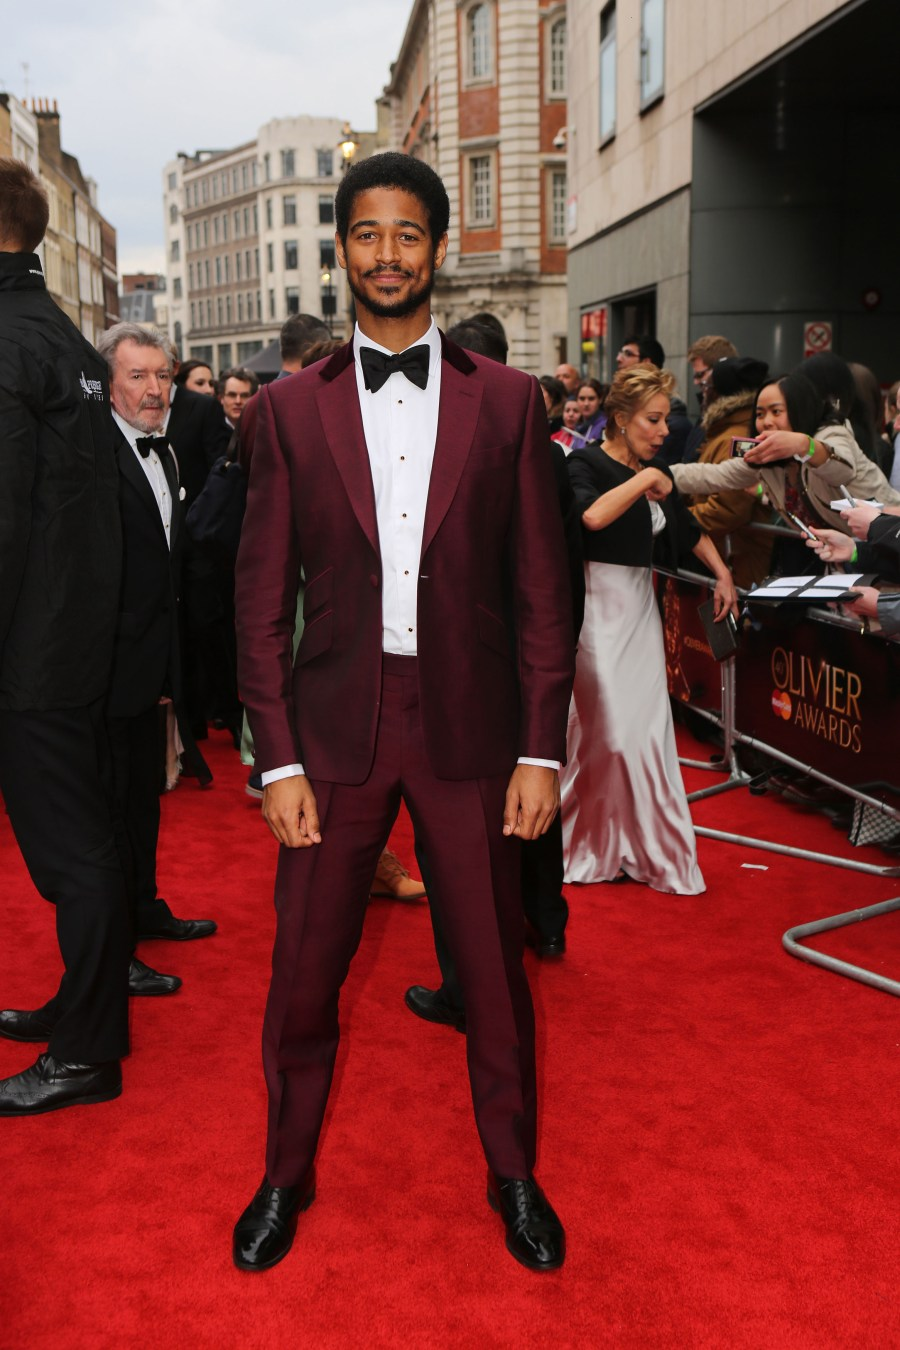 Alfie Enoch wearing Chester Barrie Official Sponsors of Menswear at the Olivier Awards. Gareth Davies Photographer +44 (0) 7774 899 744 Snap Media Productions Twitter: SNAPMEDIAPRO